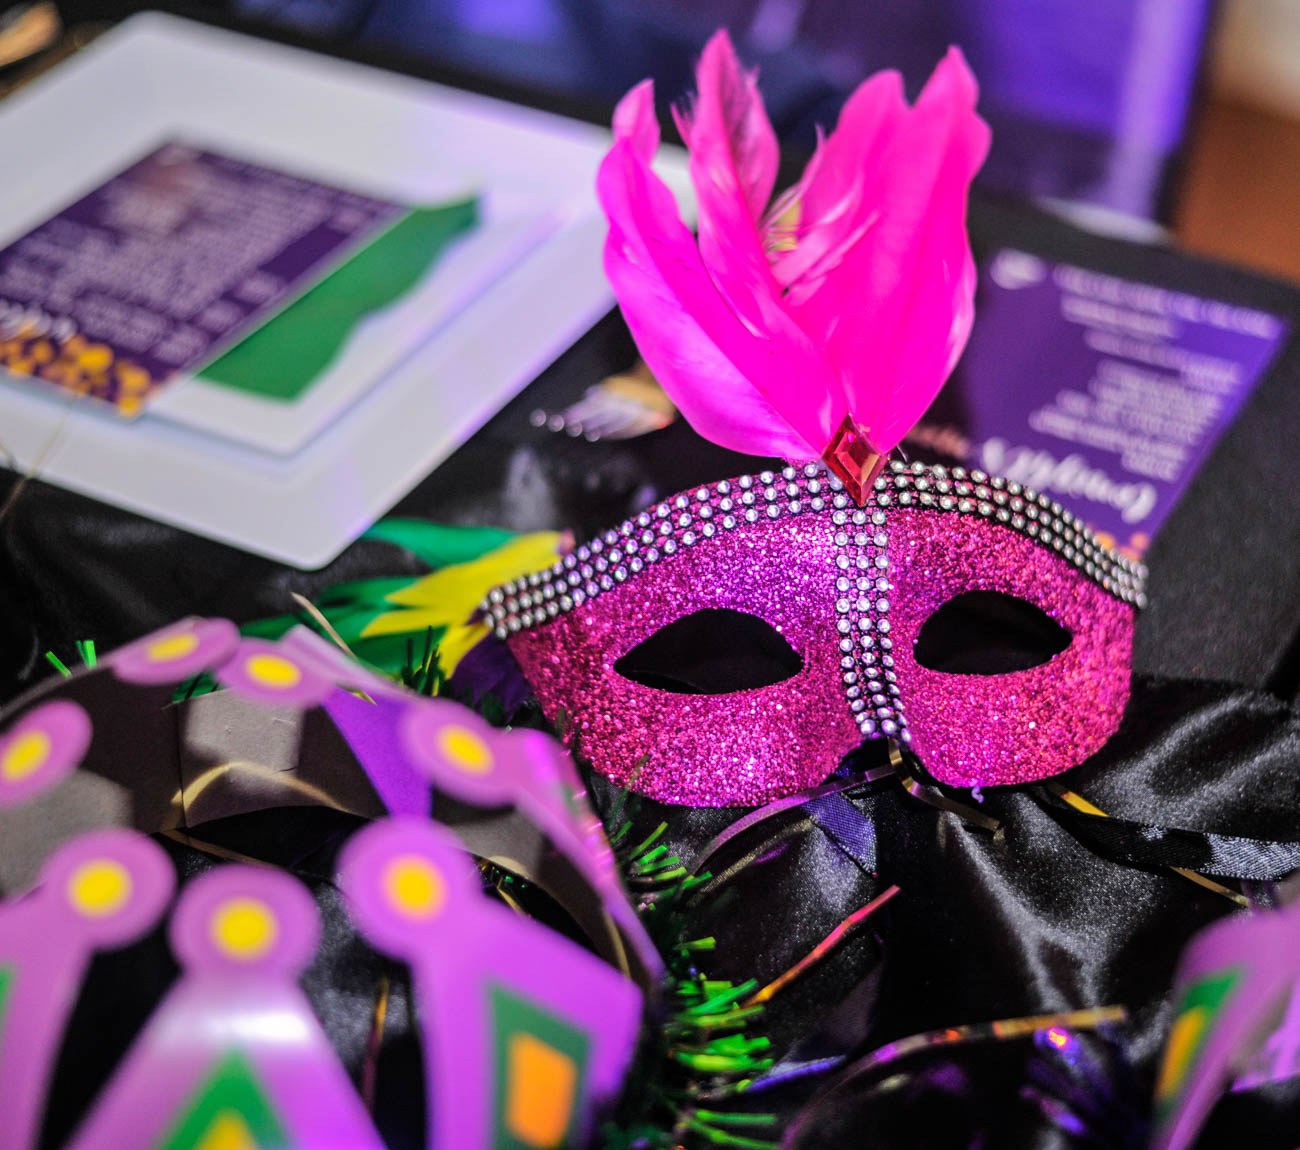 Guests enjoyed a Cajun dinner, live music from MYCincinnati and the Price Hillharmonic, raffle prizes, and more. There was also a prize awarded for the guest who was dressed most festively in Mardi Gras attire. / Image: Kellie Coleman // Published: 2.22.20